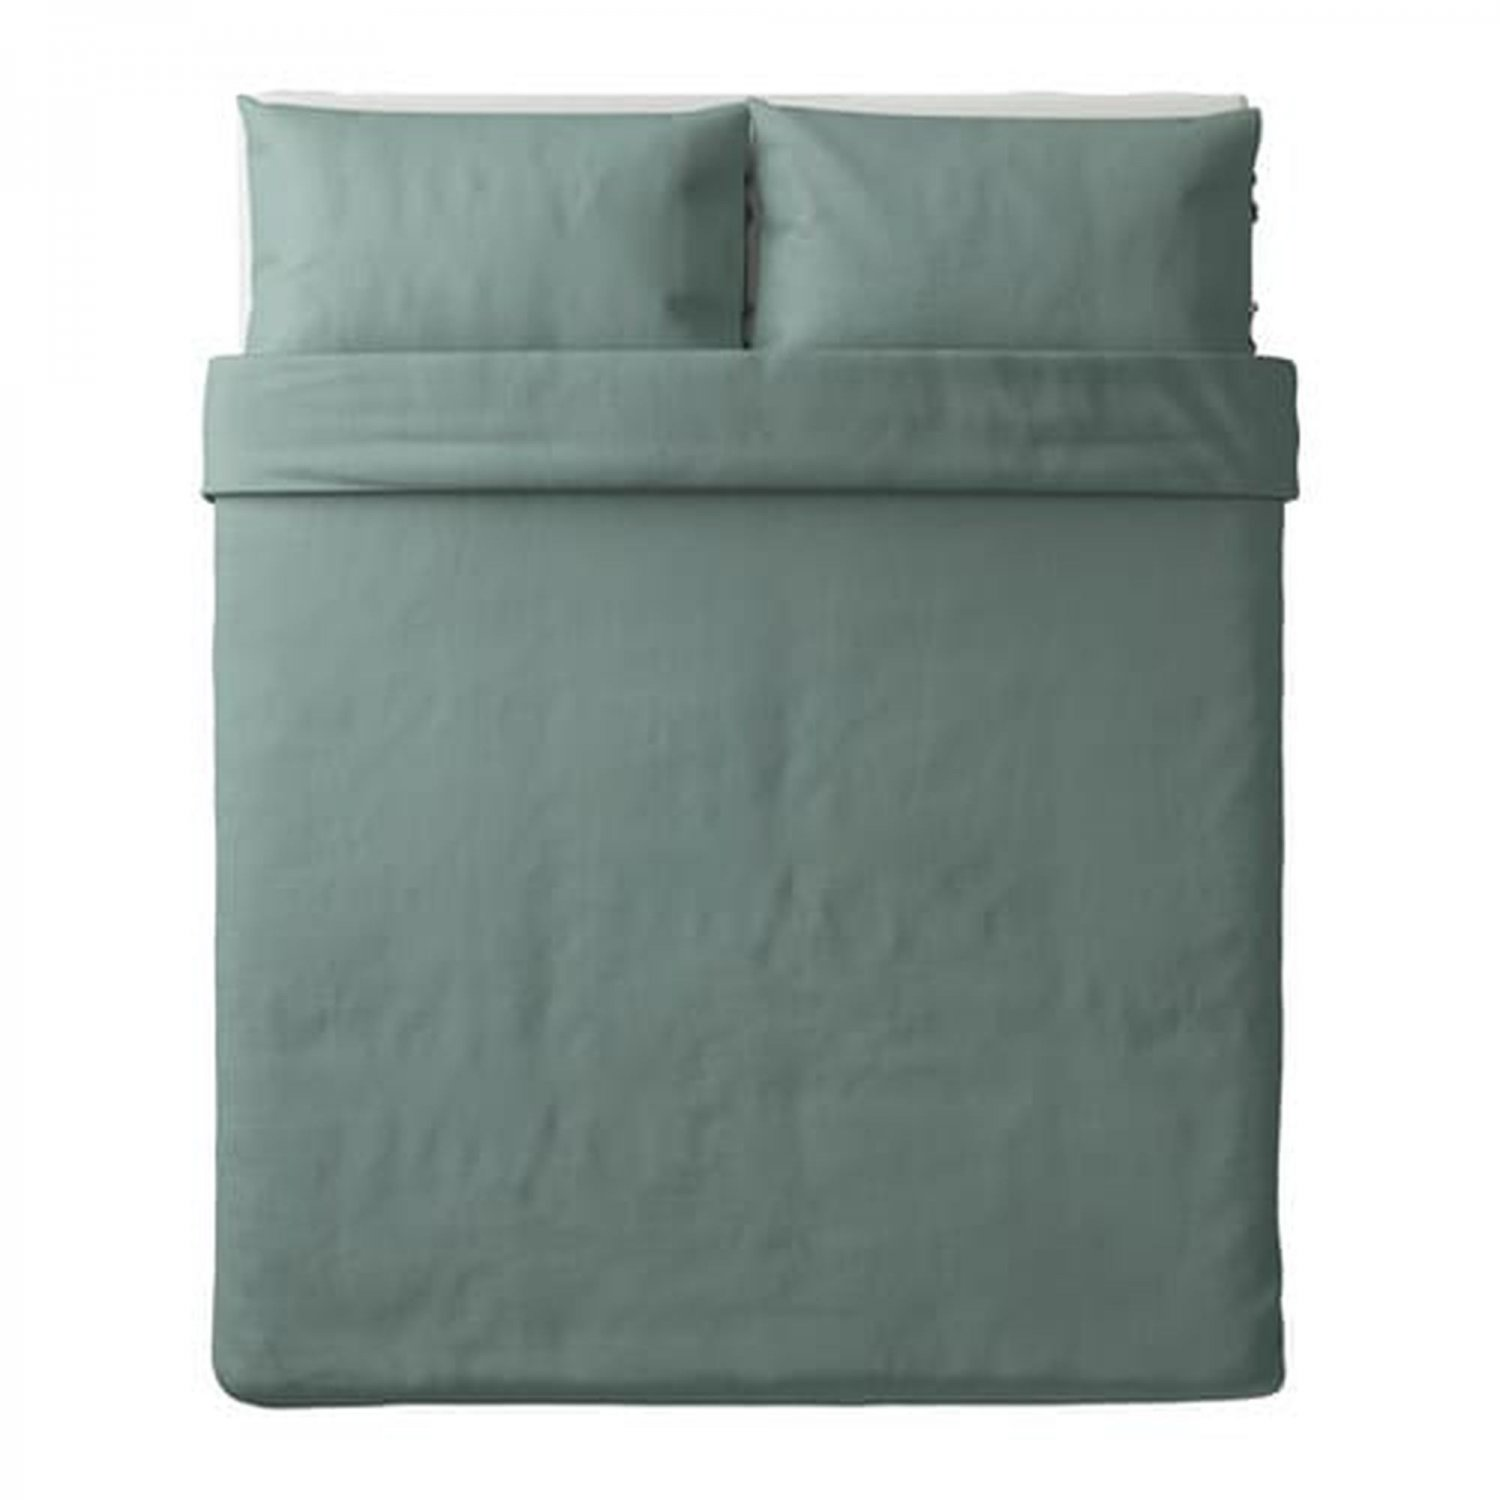 IKEA Puderviva QUEEN Full Duvet COVER and Pillowcases Set LINEN Green teal